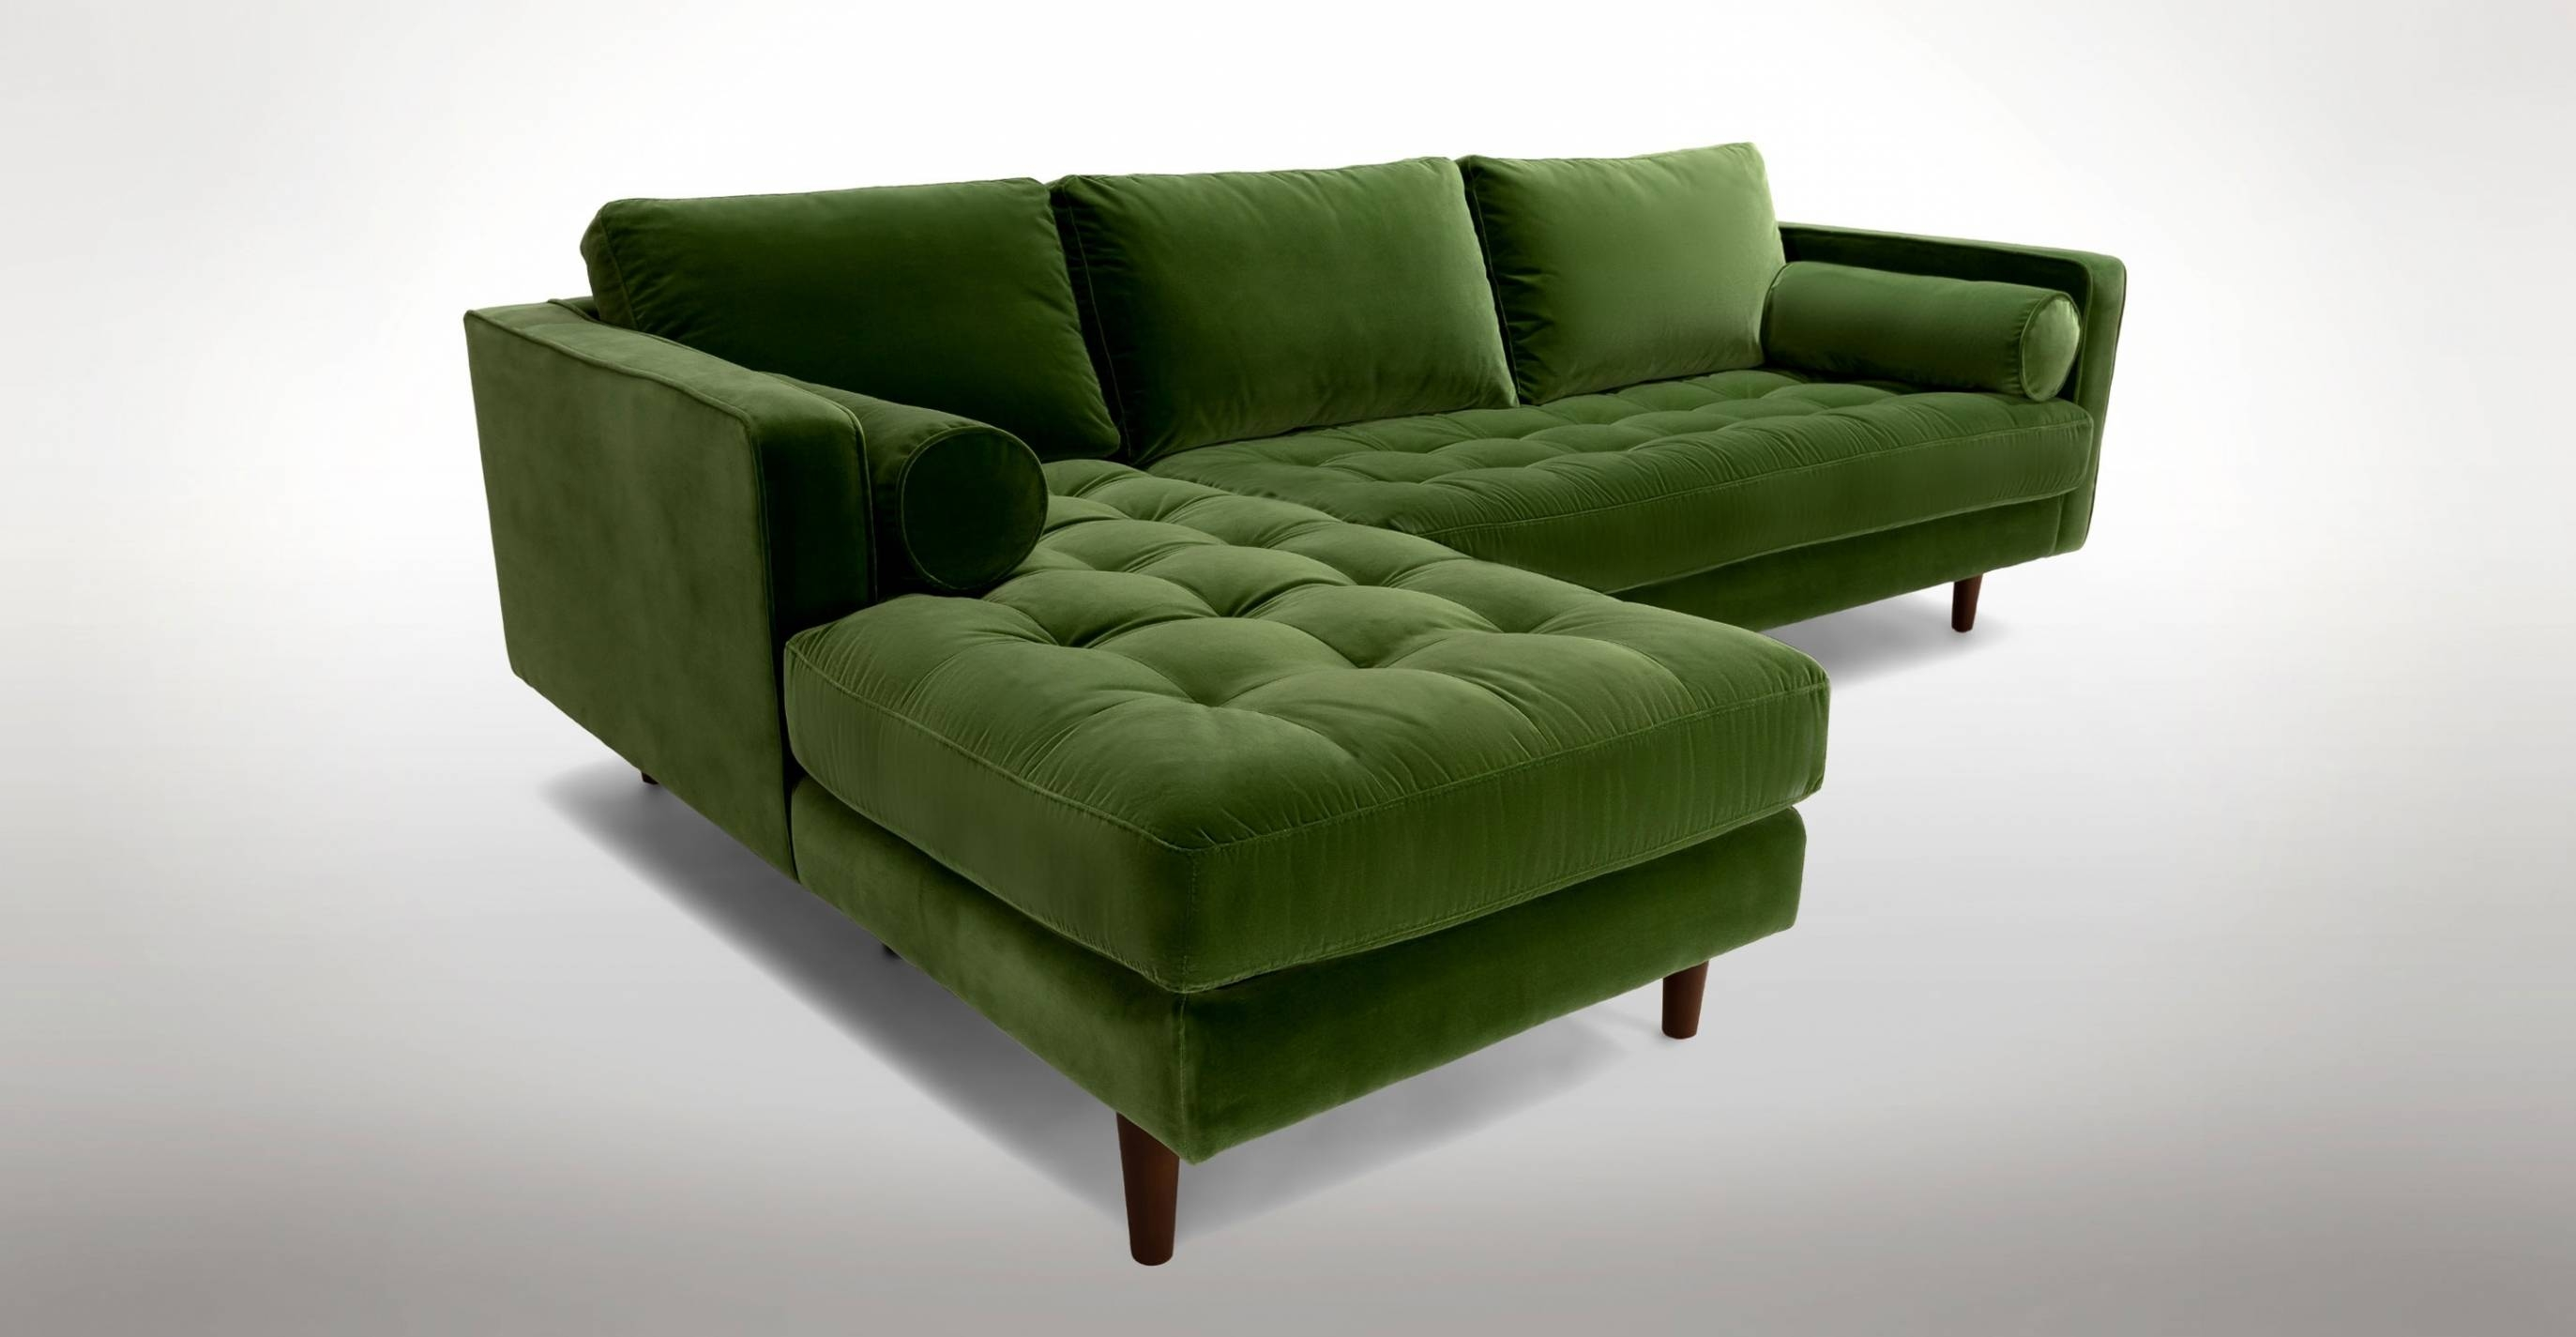 Likable Olive Green Fabric Sectional Sofa With Chaise And With with regard to Green Sectional Sofa With Chaise (Image 17 of 30)